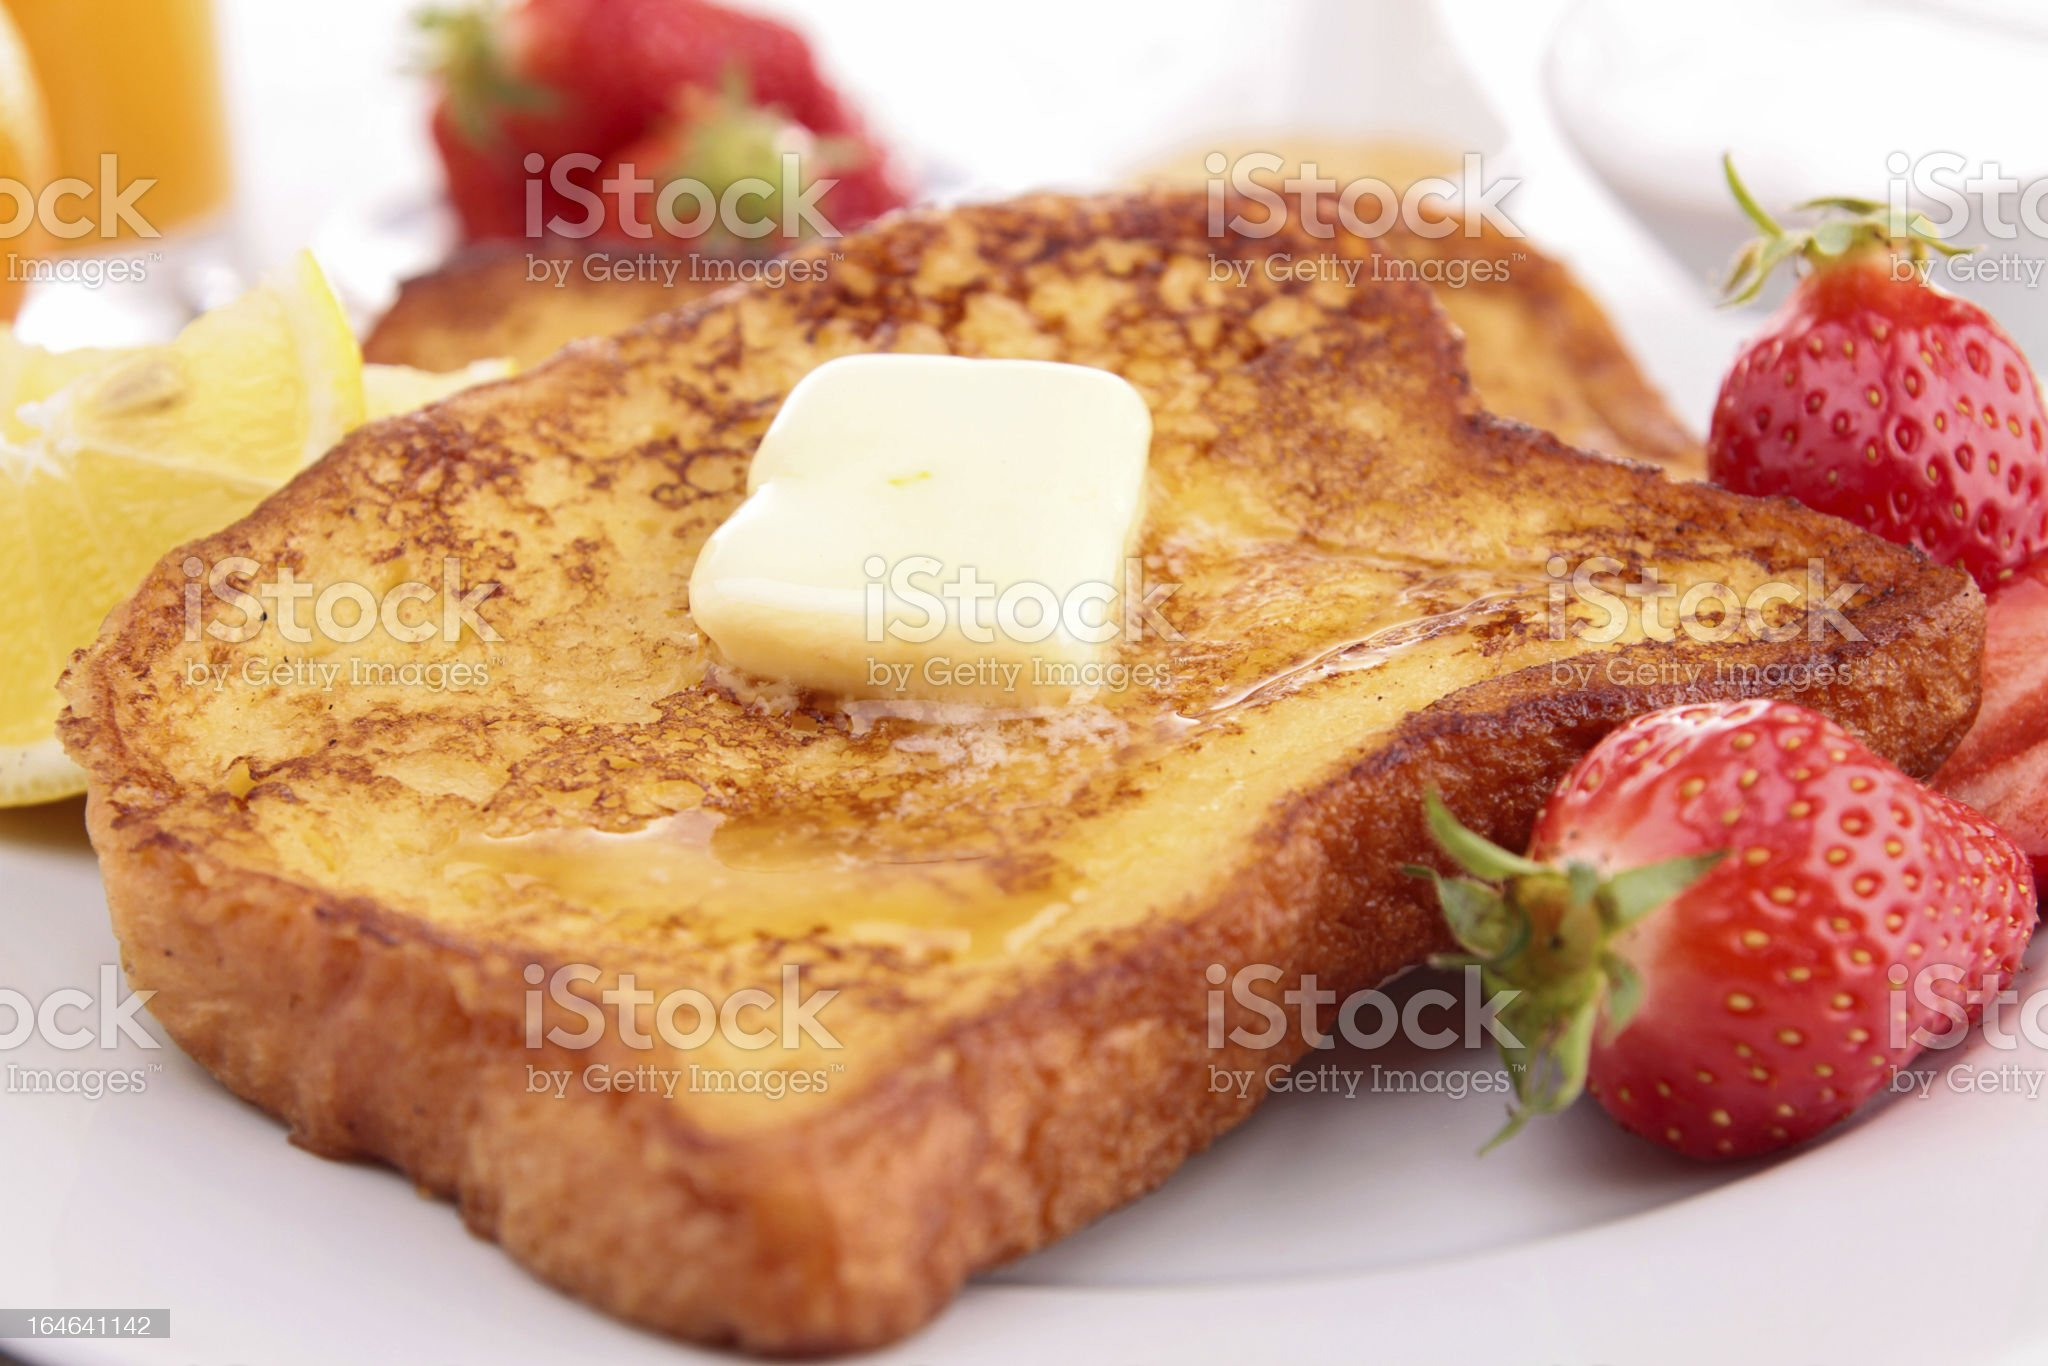 french toast with fruits royalty-free stock photo